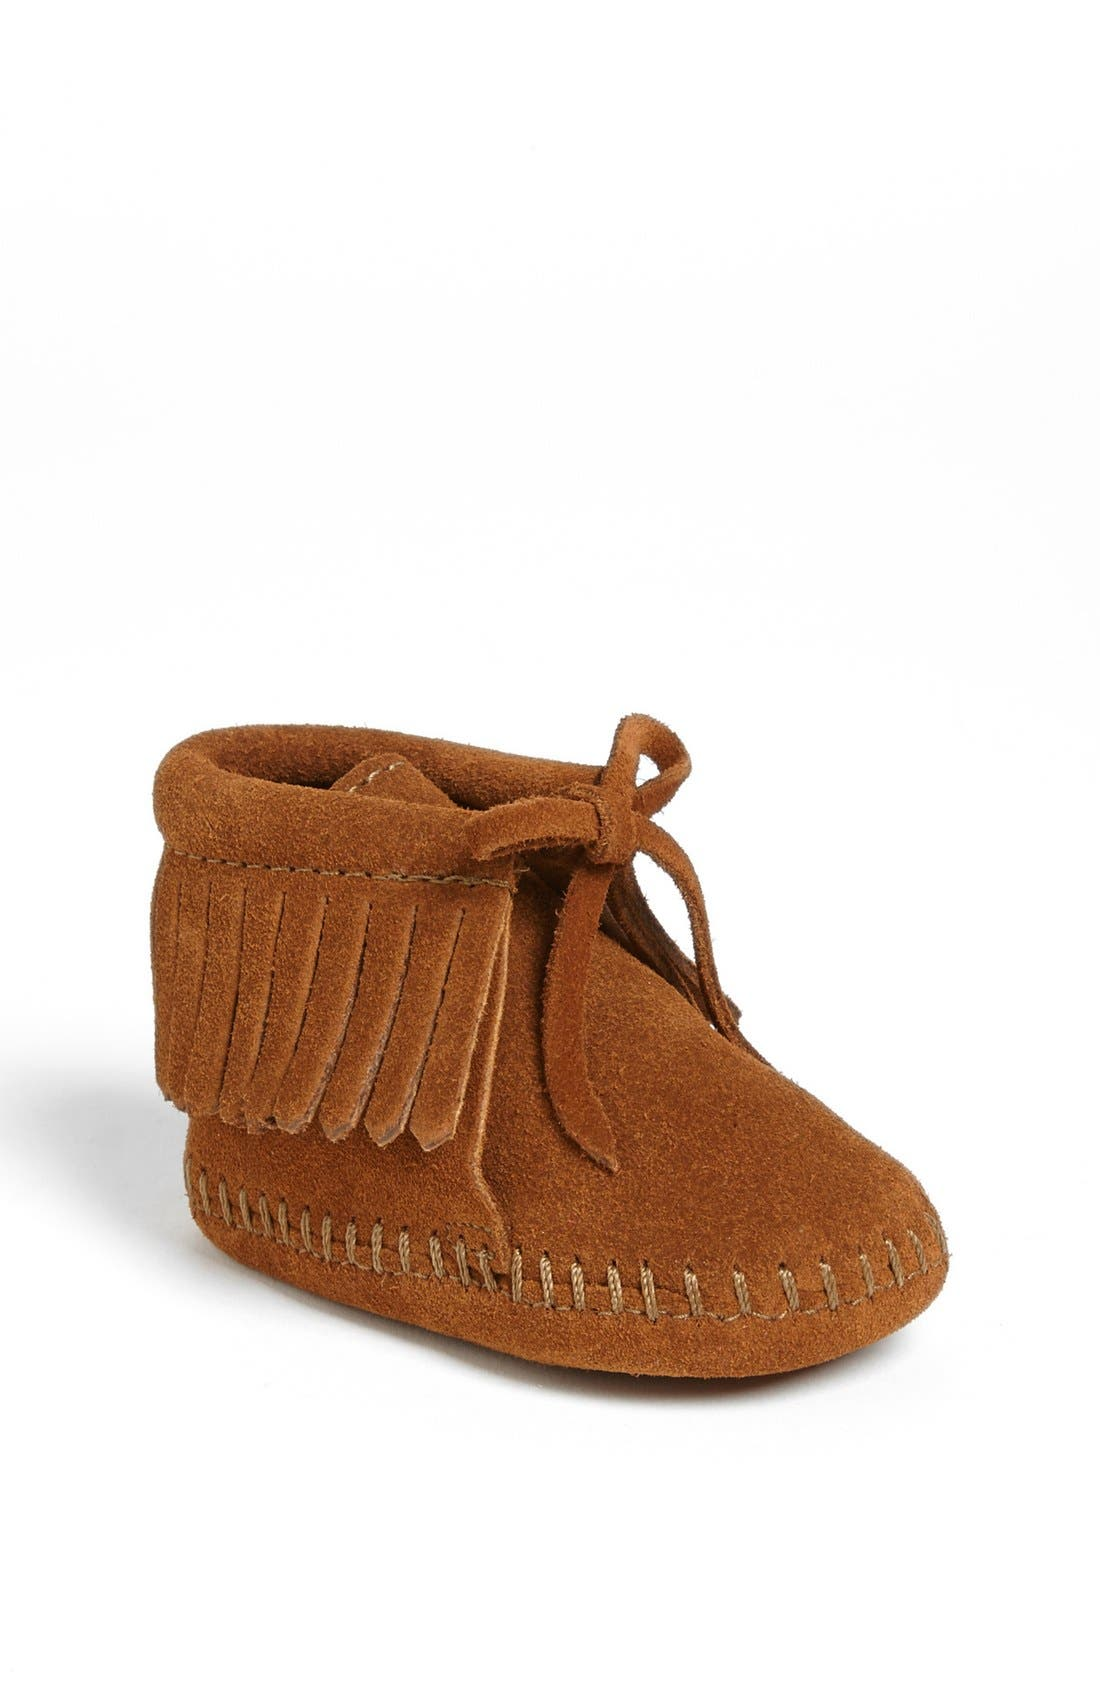 Alternate Image 1 Selected - Minnetonka Fringe Bootie (Baby & Walker)